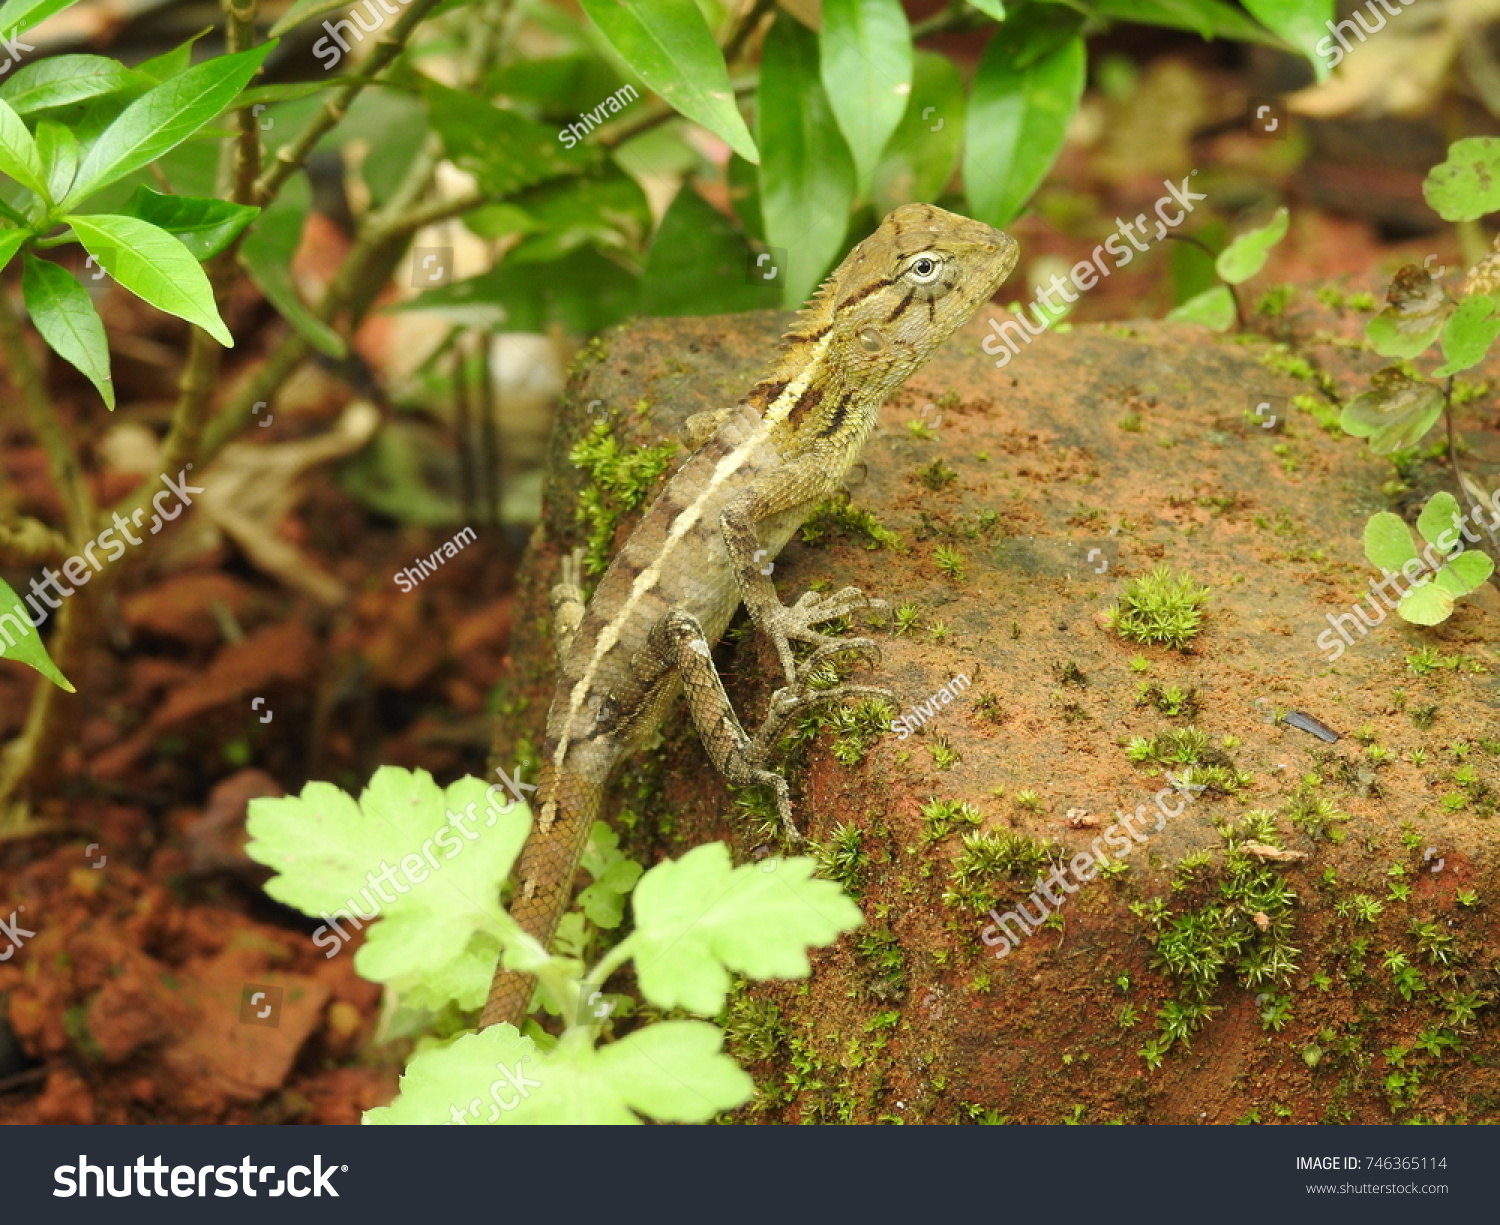 Oriental Garden Lizard Calotes Versicolor Stock Photo (Royalty Free ...